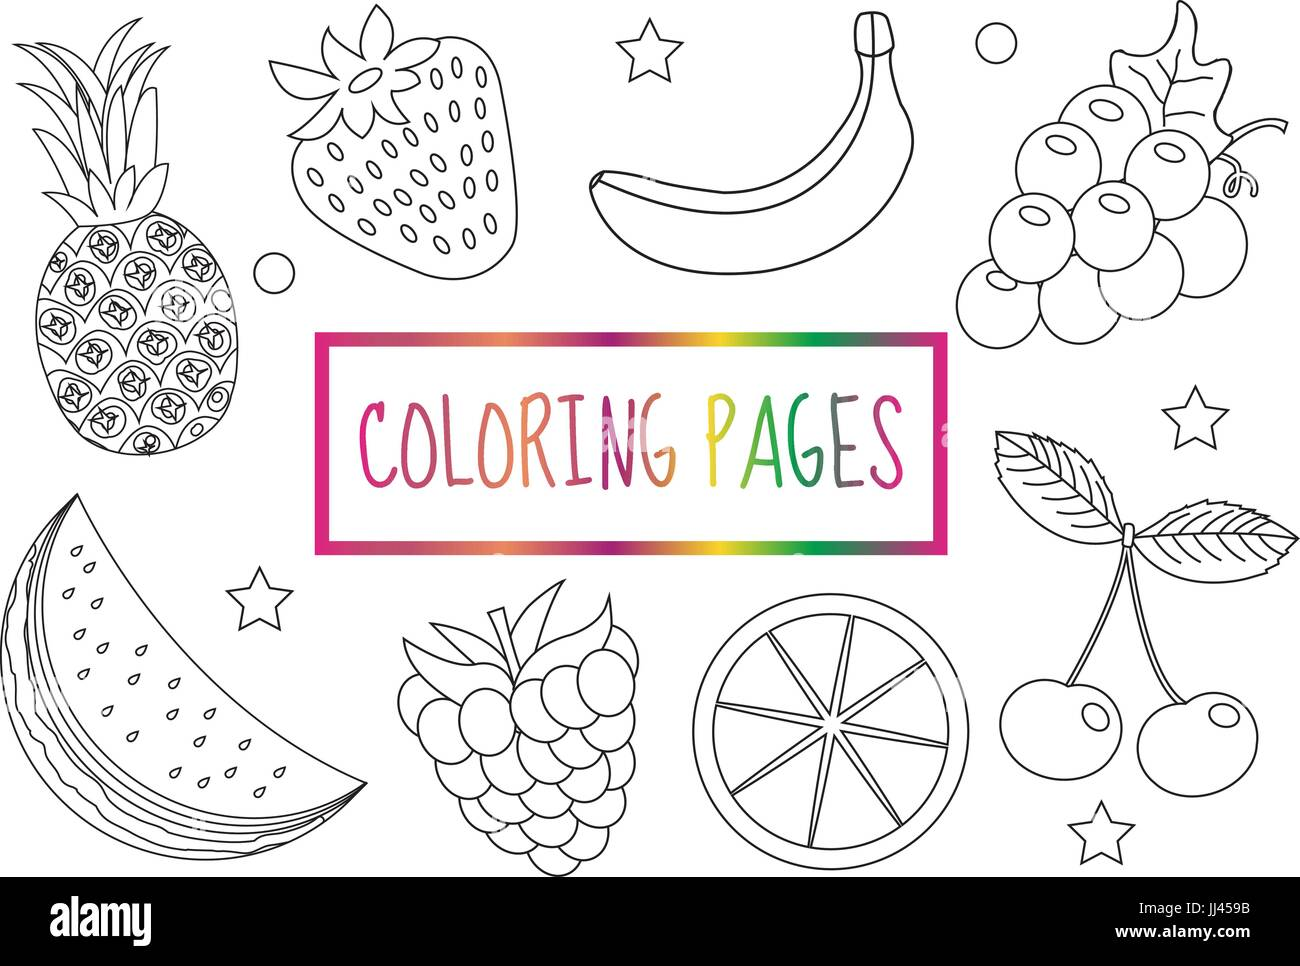 Doodle Fruit Funny Style Stockfotos & Doodle Fruit Funny Style ...